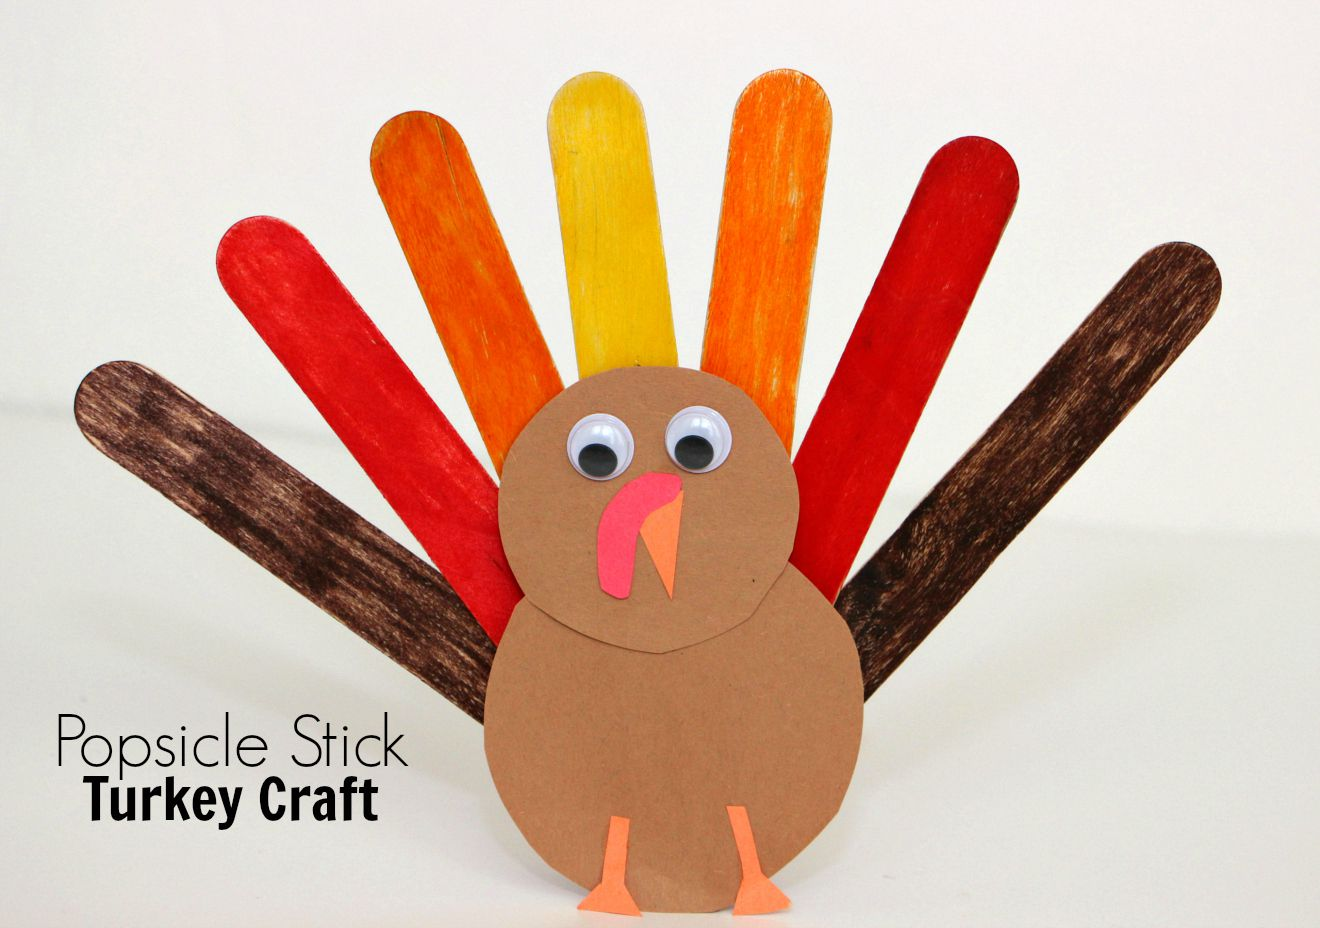 Ice Cream Stick Fall Crafts For Toddlers